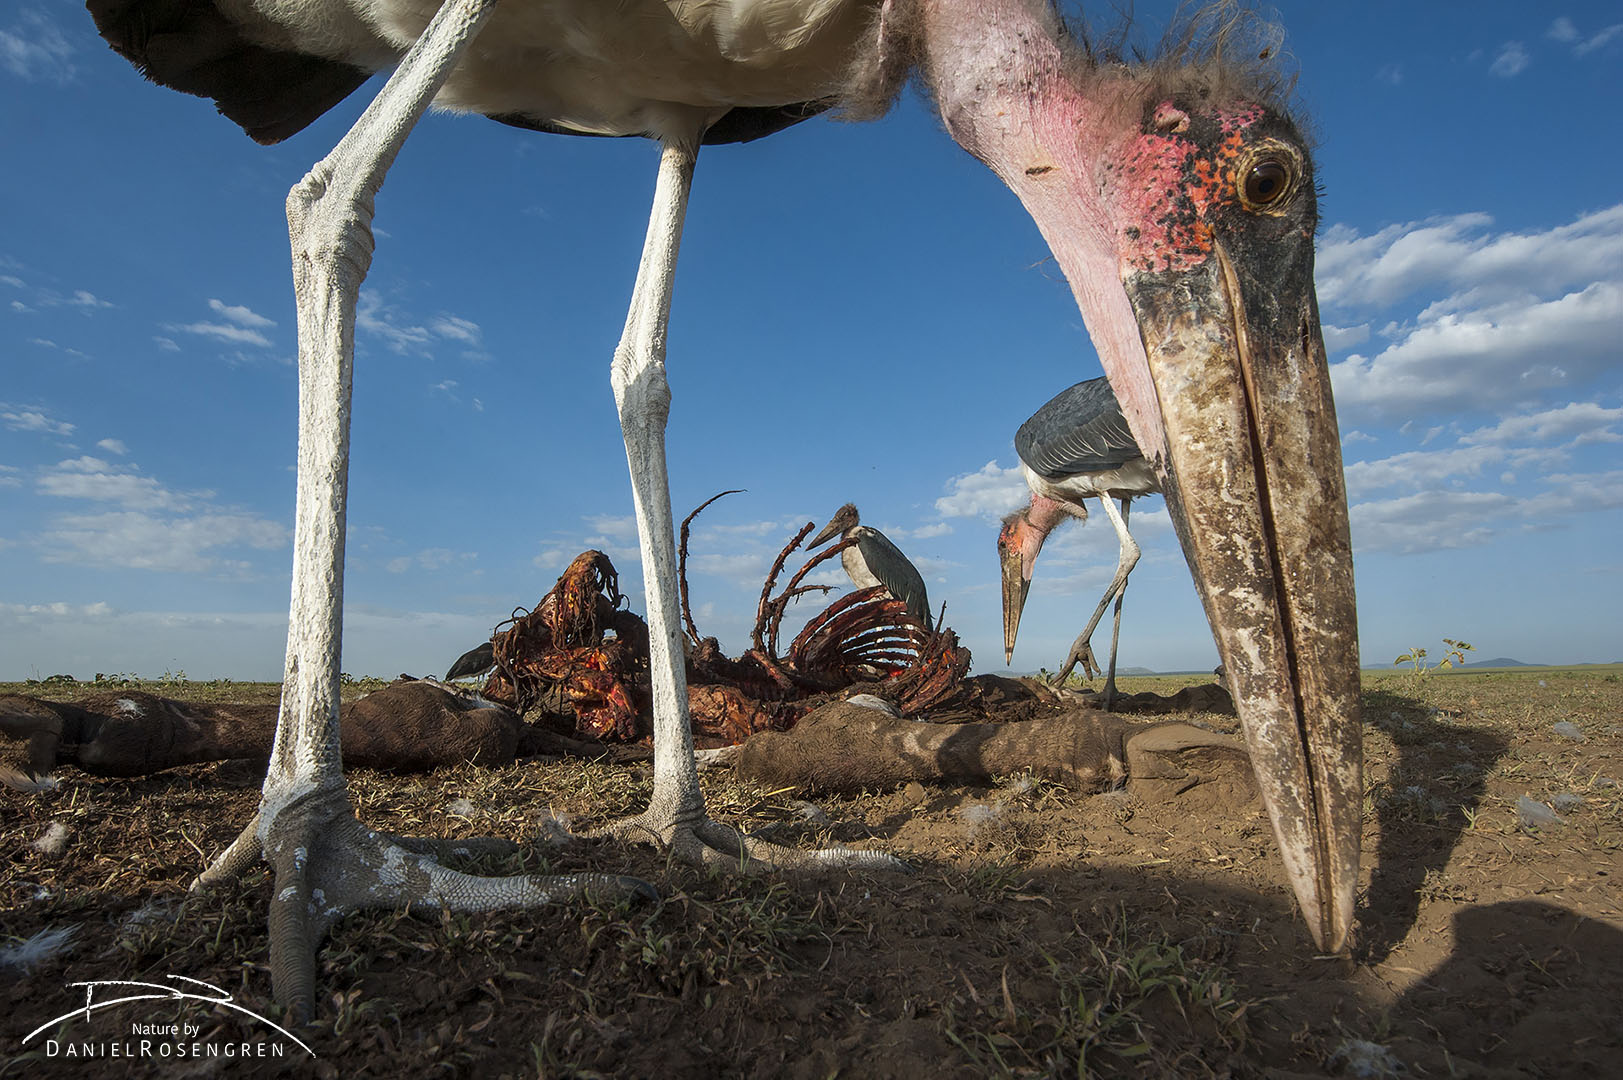 A Marabou stork picking up small pieces of meat just in front of the camera lens. © Daniel Rosengren